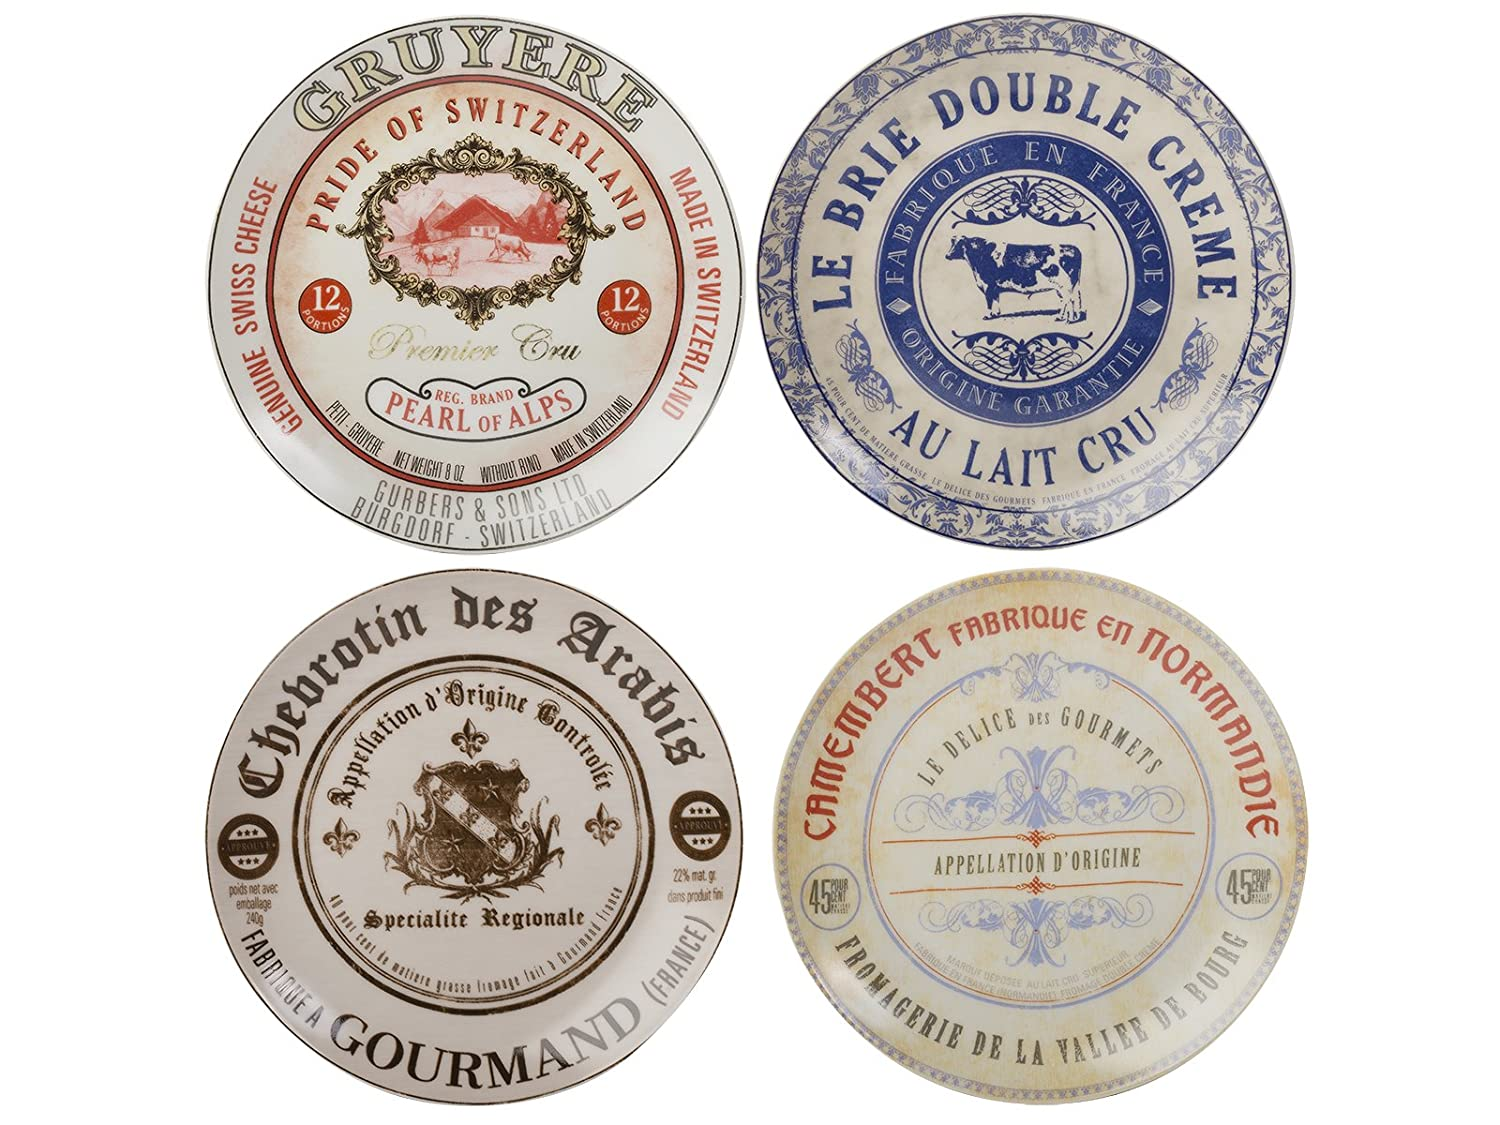 Set of 4 Gourmet Cheese Porcelain Side Plates In Hat Box Creative Tops SP3607